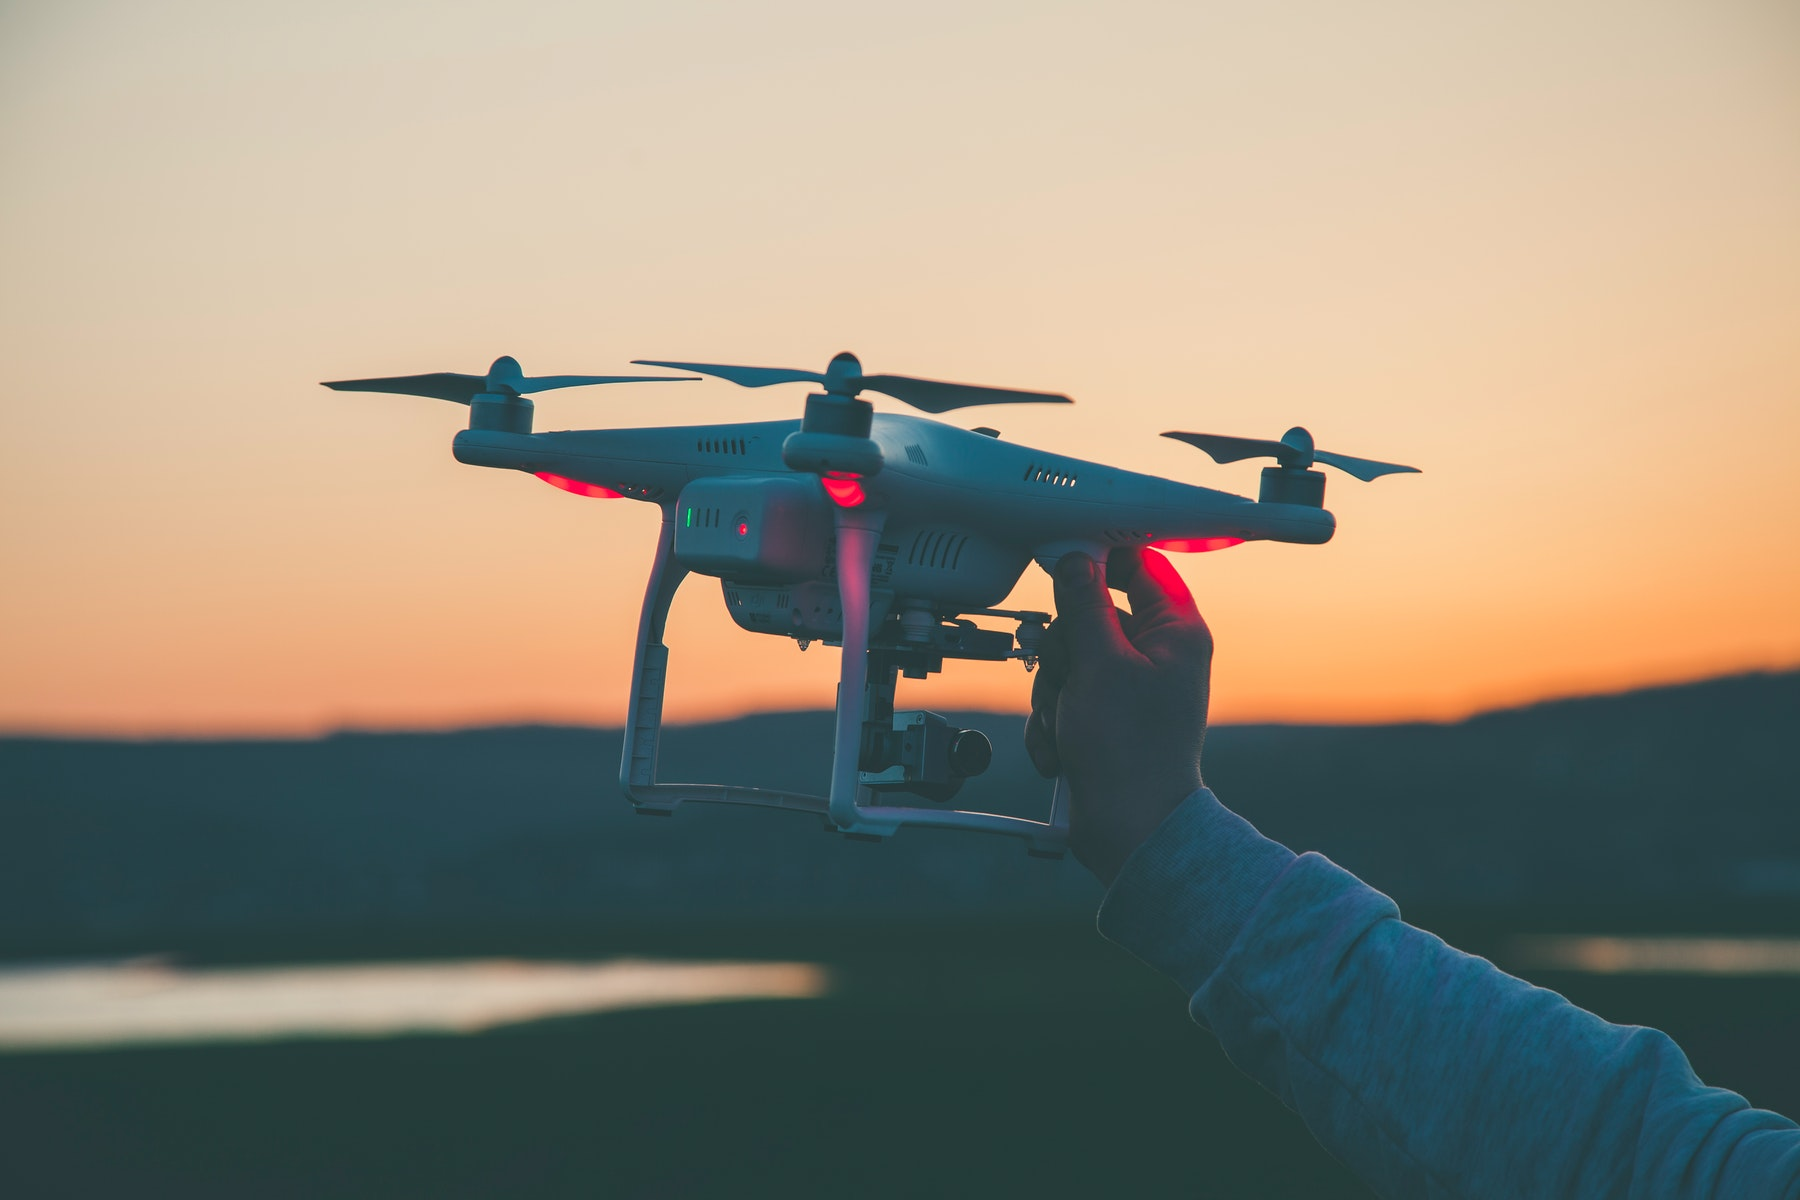 Demand for Drones on the rise, due to COVID-19 Disruption